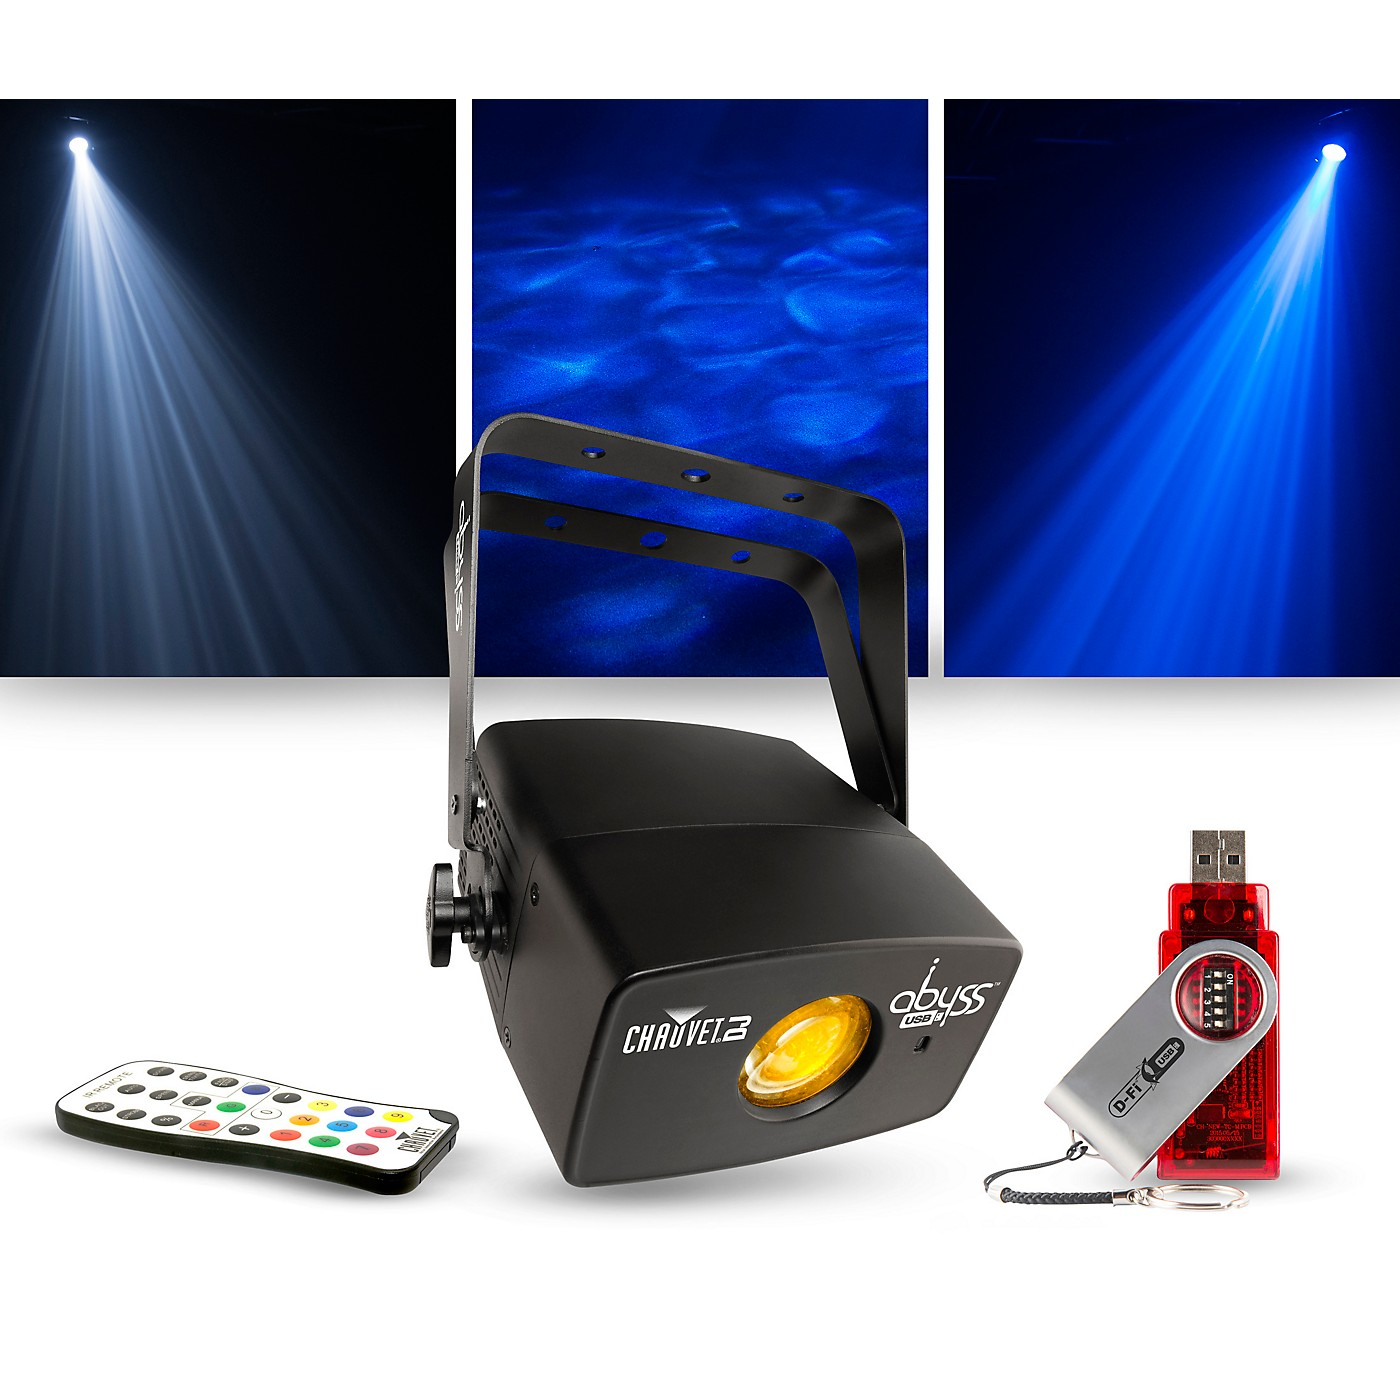 CHAUVET DJ Lighting Package with Abyss USB Multicolored Water Effect with IRC-6 and D-Fi Controllers thumbnail